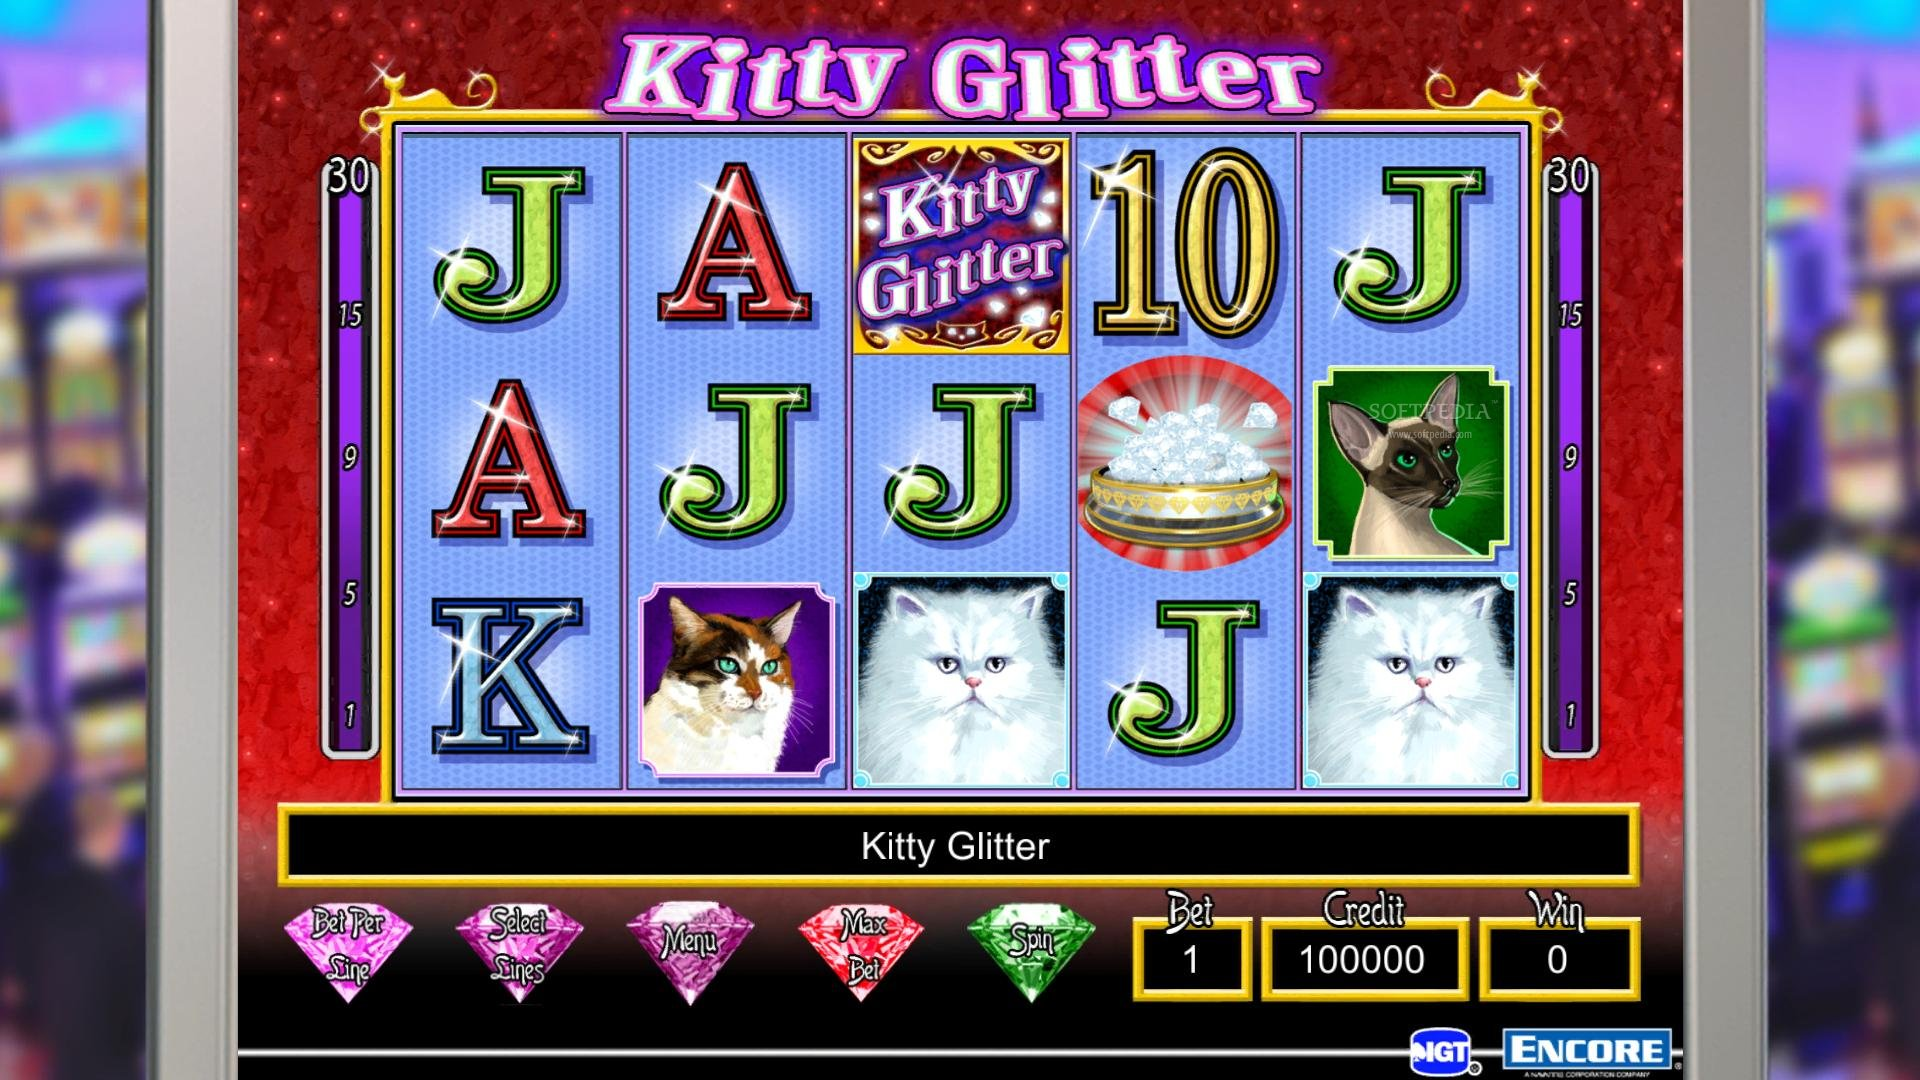 Kitty Glitter Slot Game - Play Free IGT Slot Machines Online